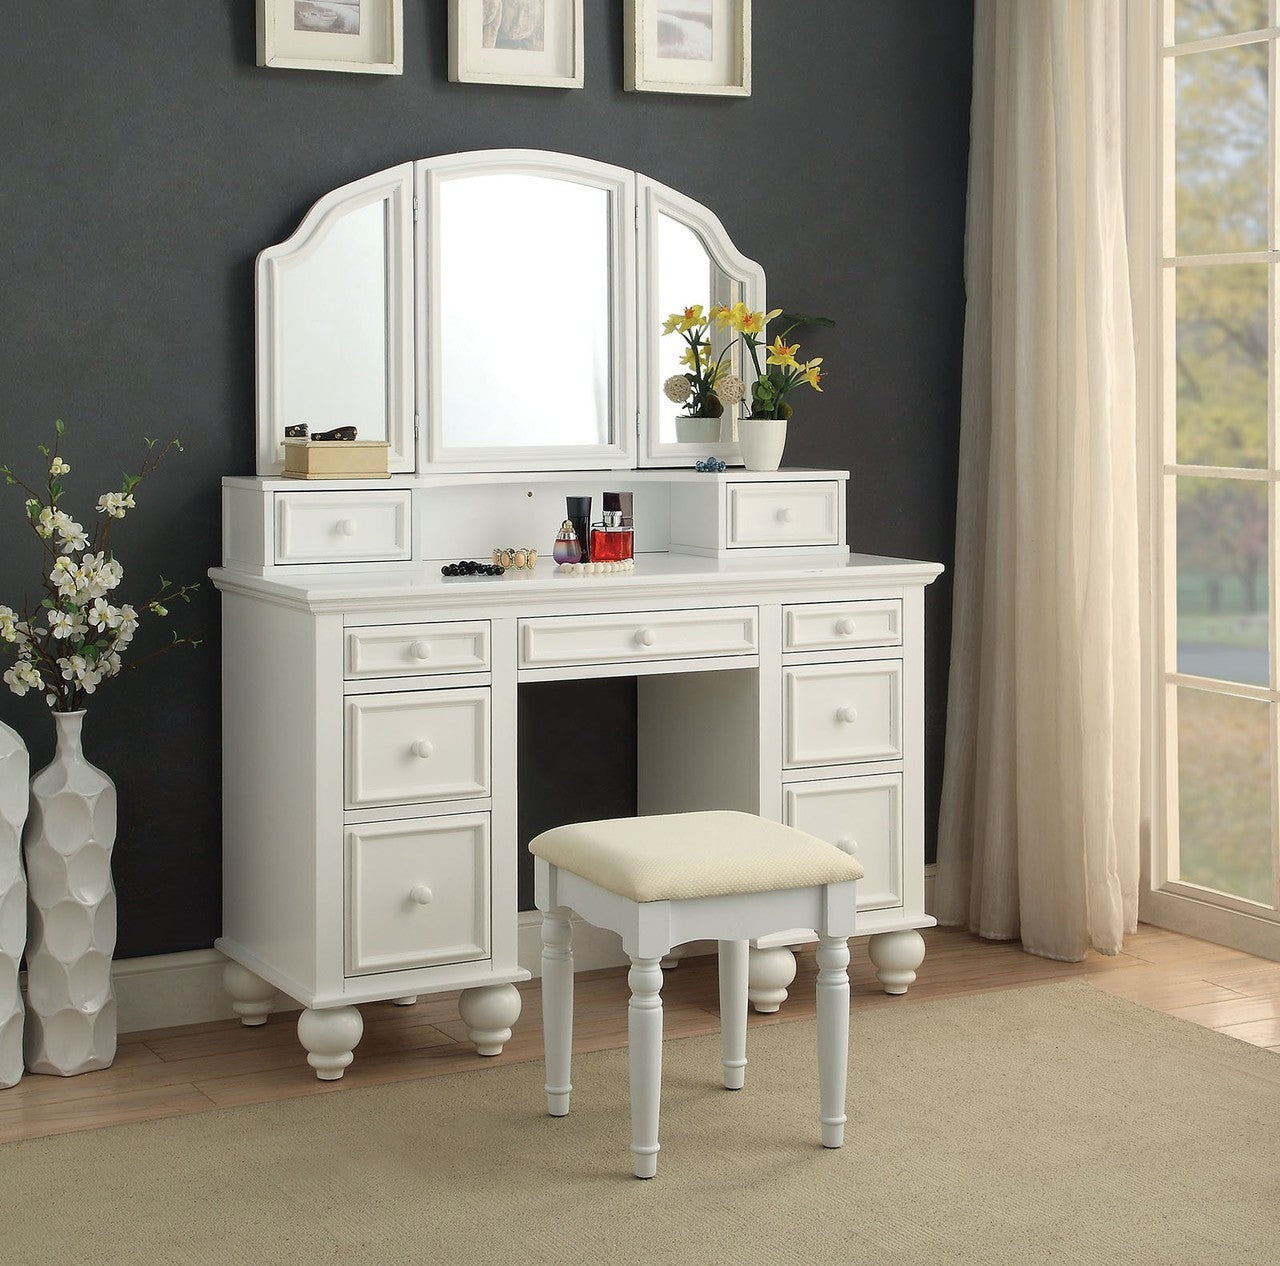 Athy Vanity Table with Bench Set, (Choose Color) – Interior Gallerie